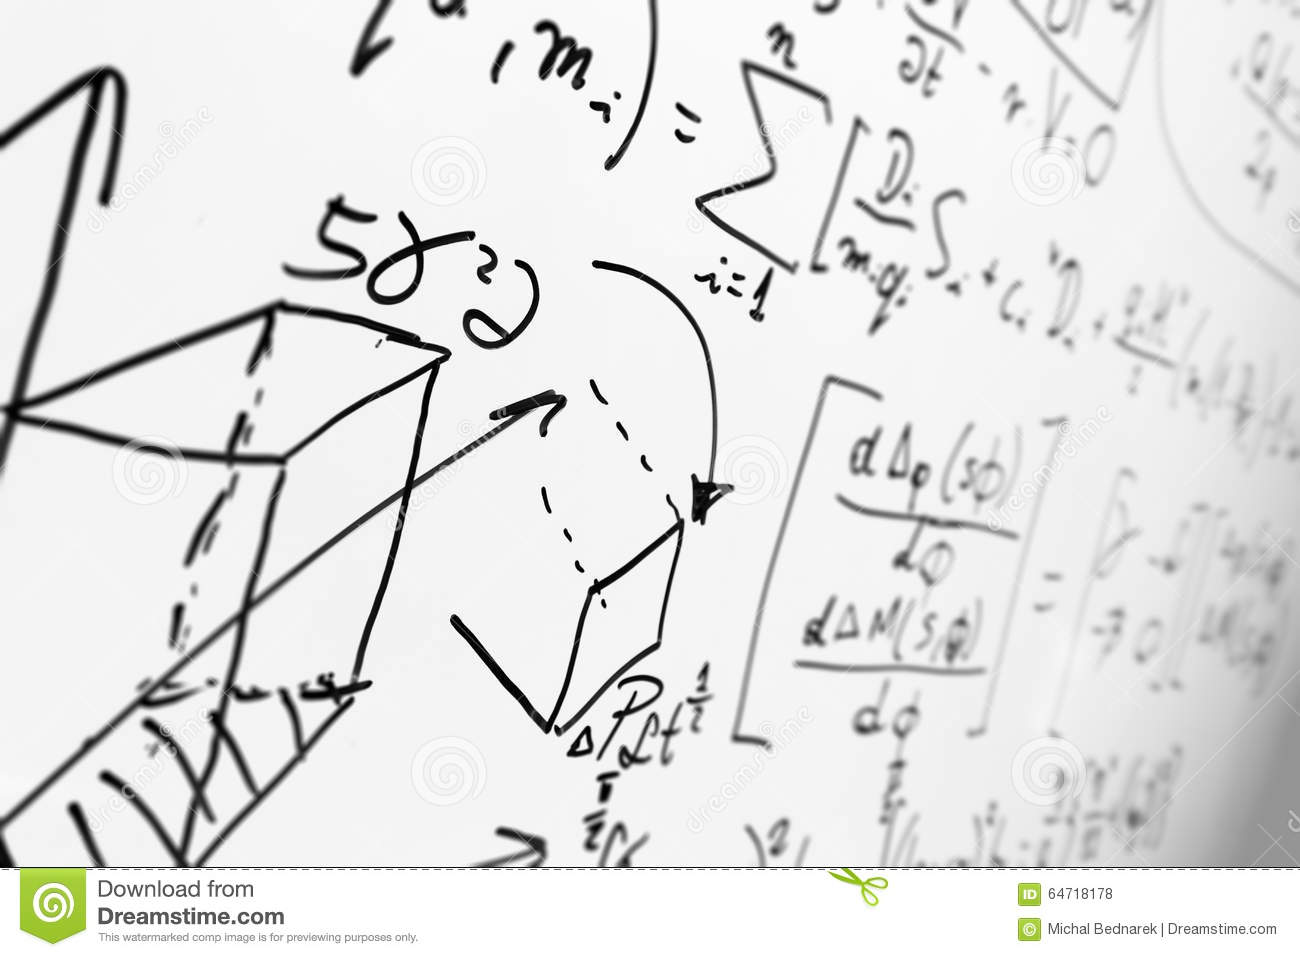 Complex Math Formulas On Whiteboard. Mathematics And Science With.